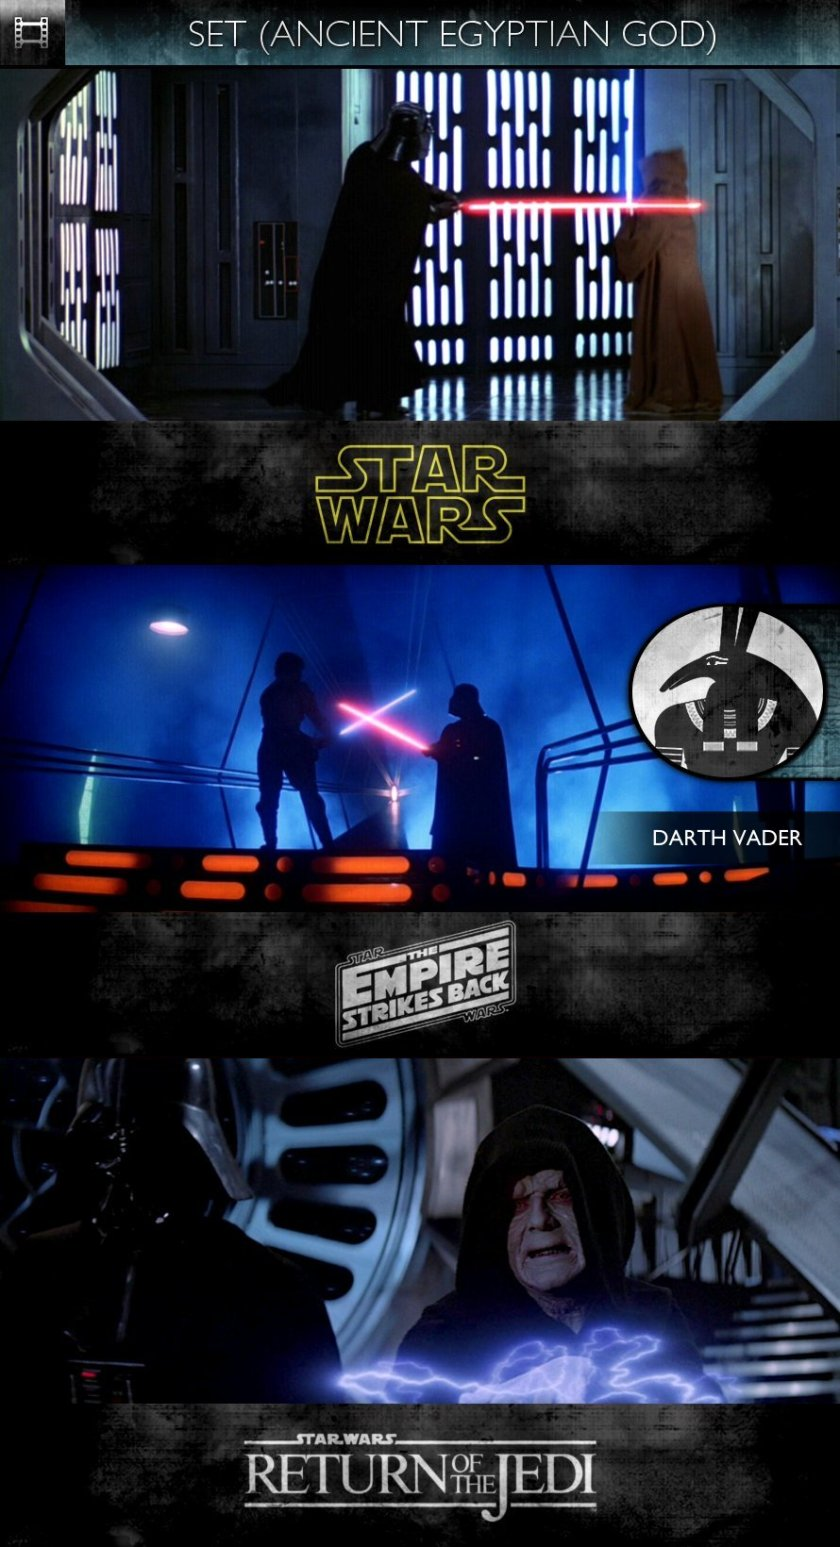 SET - Star Wars: Original Trilogy (1977-1983) - Darth Vader